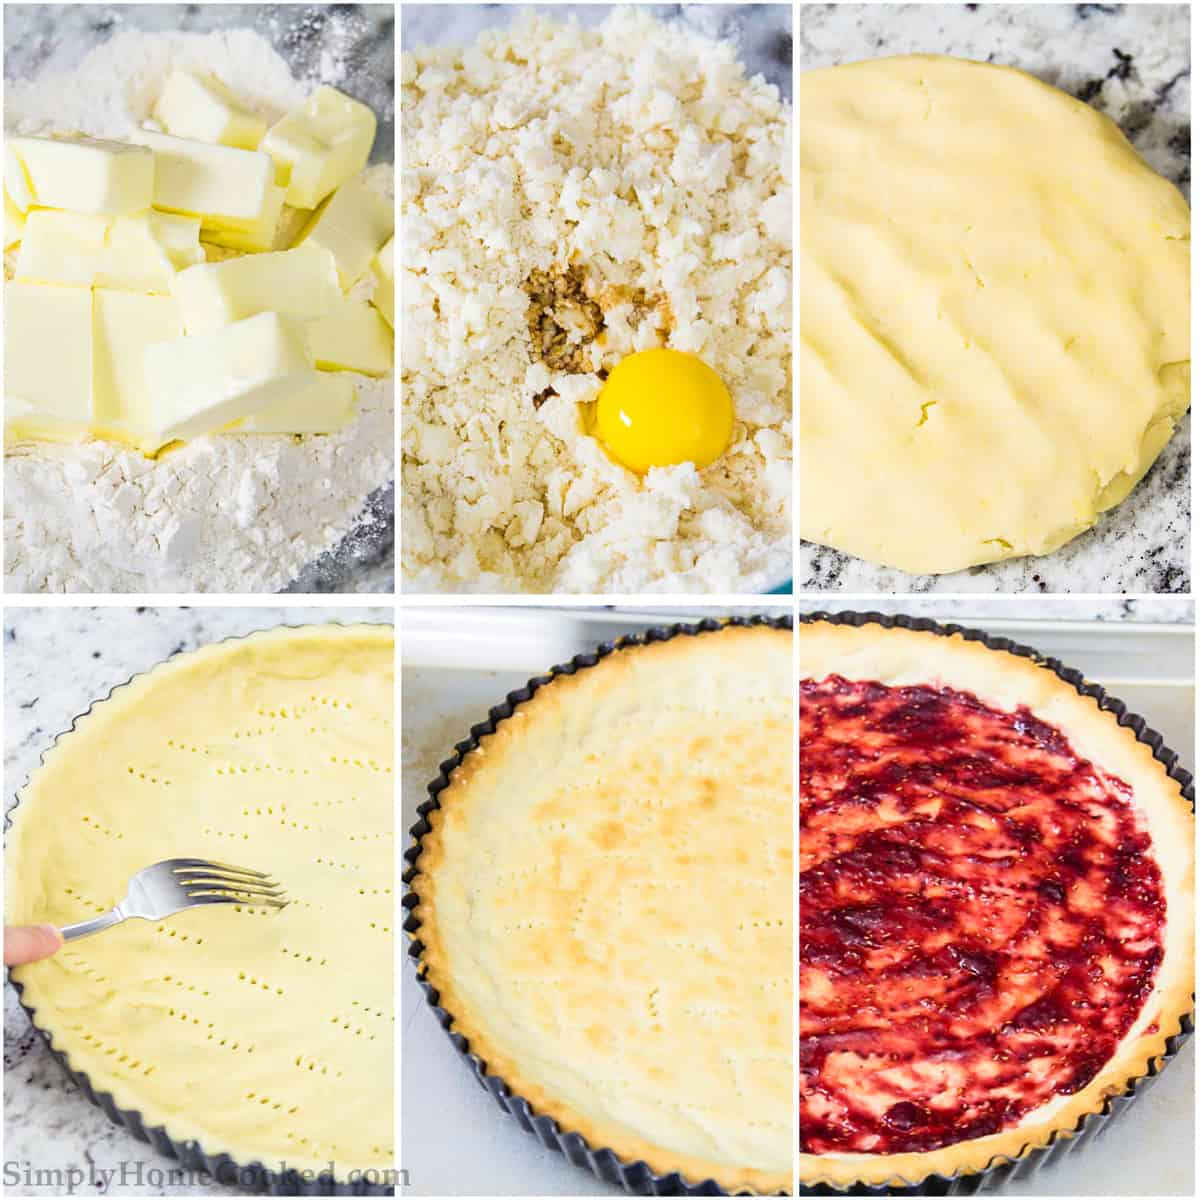 Photo collage of the process of mixing pie dough and forming crust, filling and preparing raspberry tart recipe